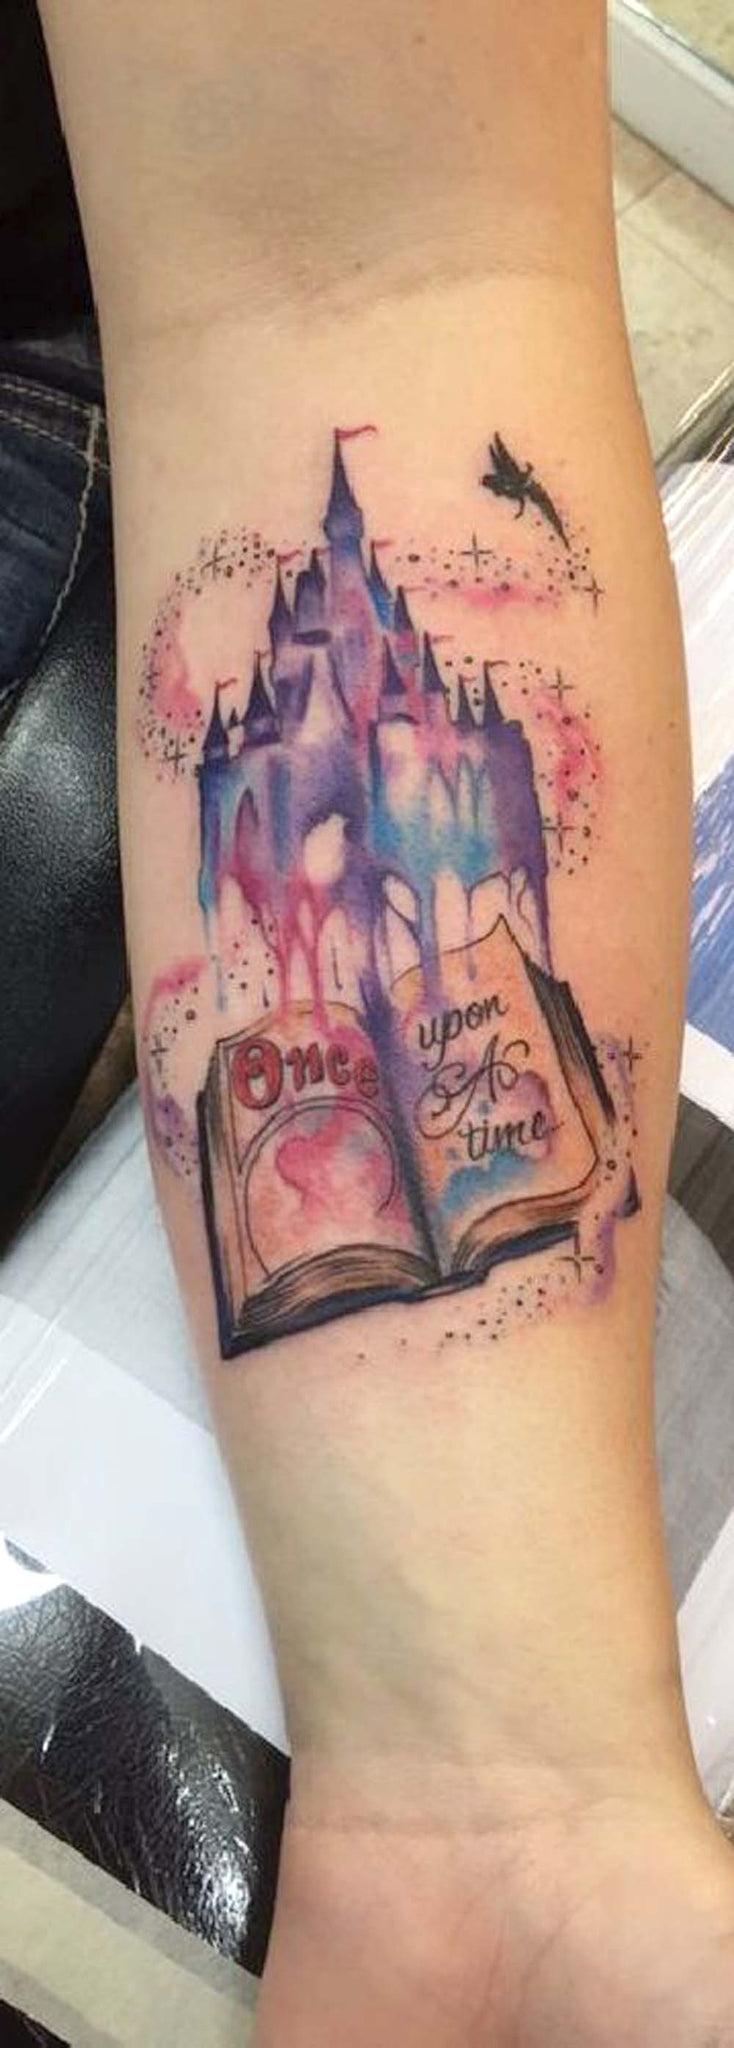 Disney Castle Watercolor Forearm Tattoo Ideas for Women Tinkerbell Fairy  -  ideas de tatuaje de antebrazo de castillo -  www.MyBodiArt.com